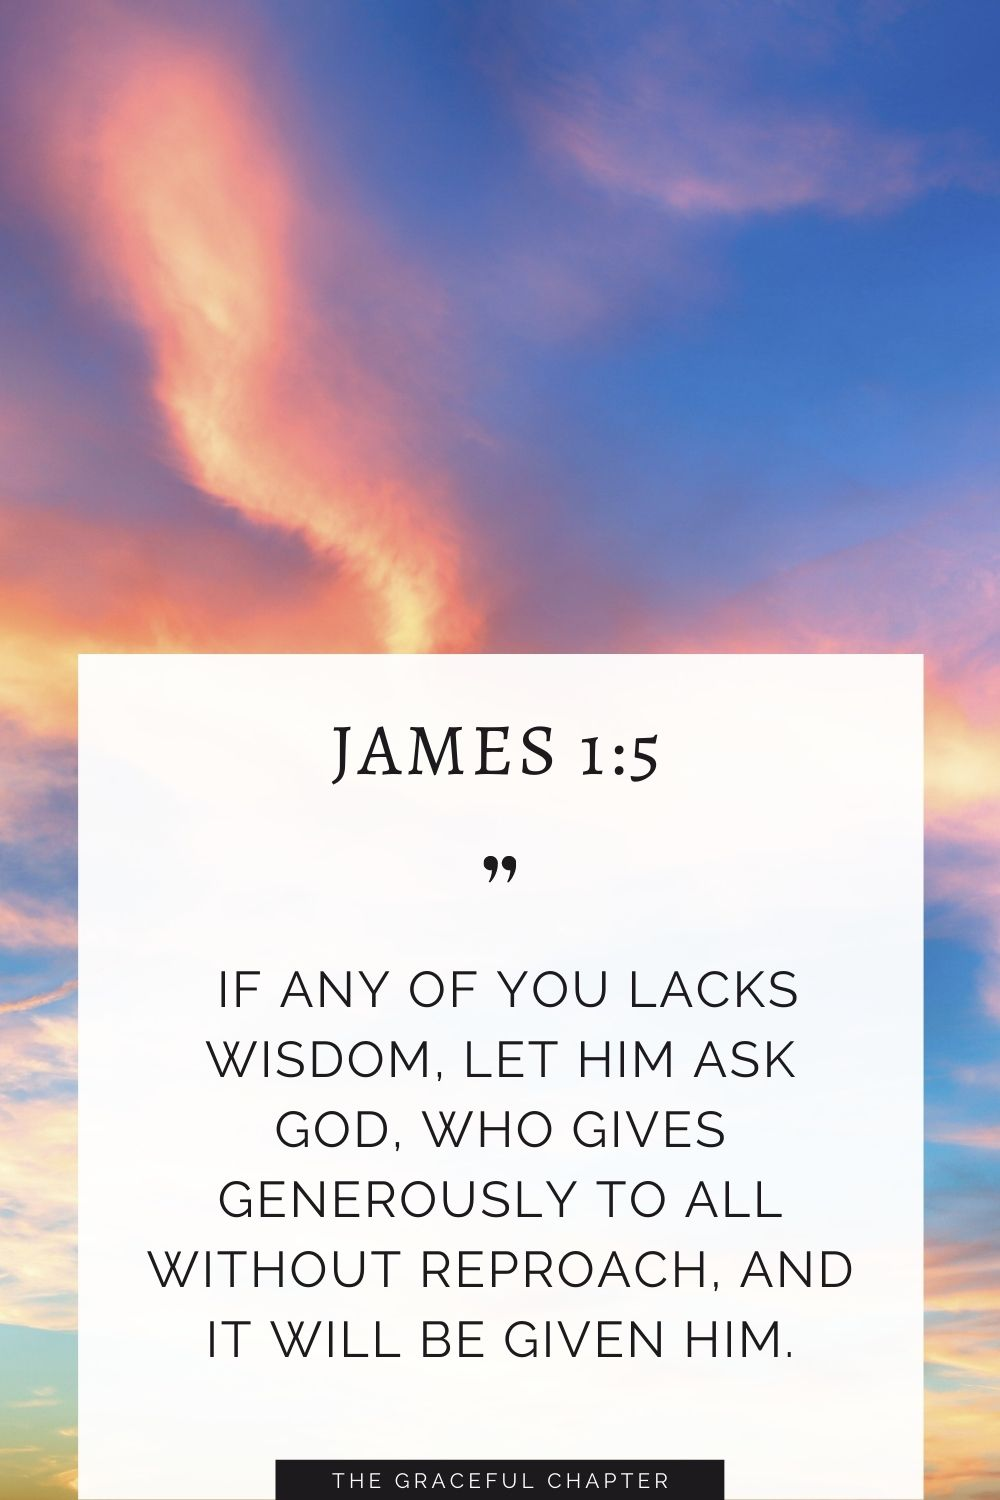 If any of you lacks wisdom, let him ask God, who gives generously to all without reproach, and it will be given him. James 1:5